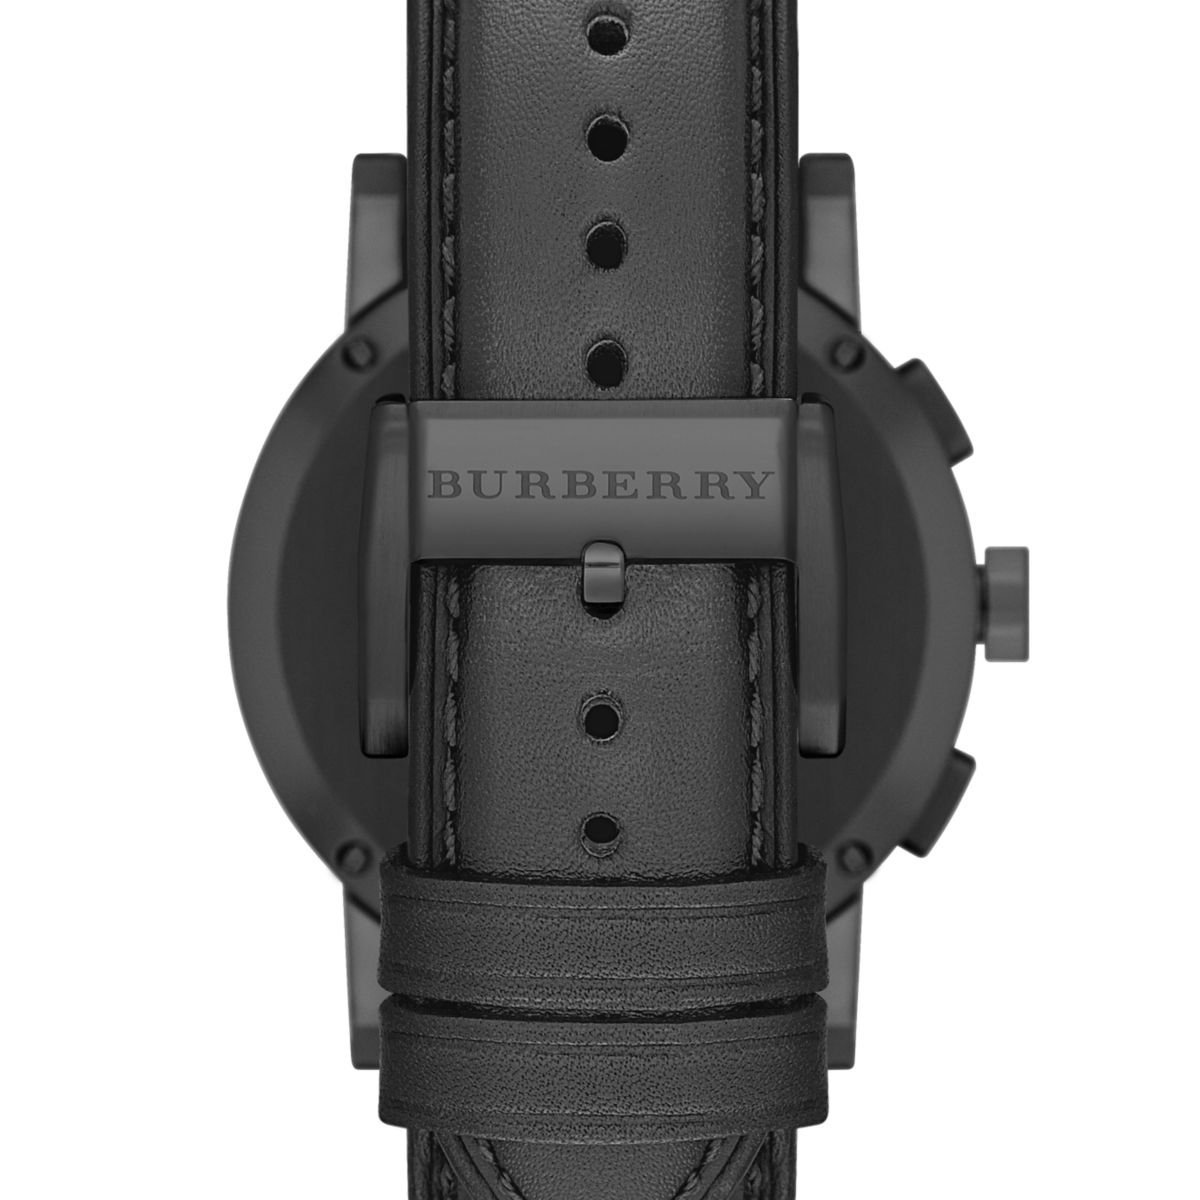 Burberry Men's Watch BU9364 image 4